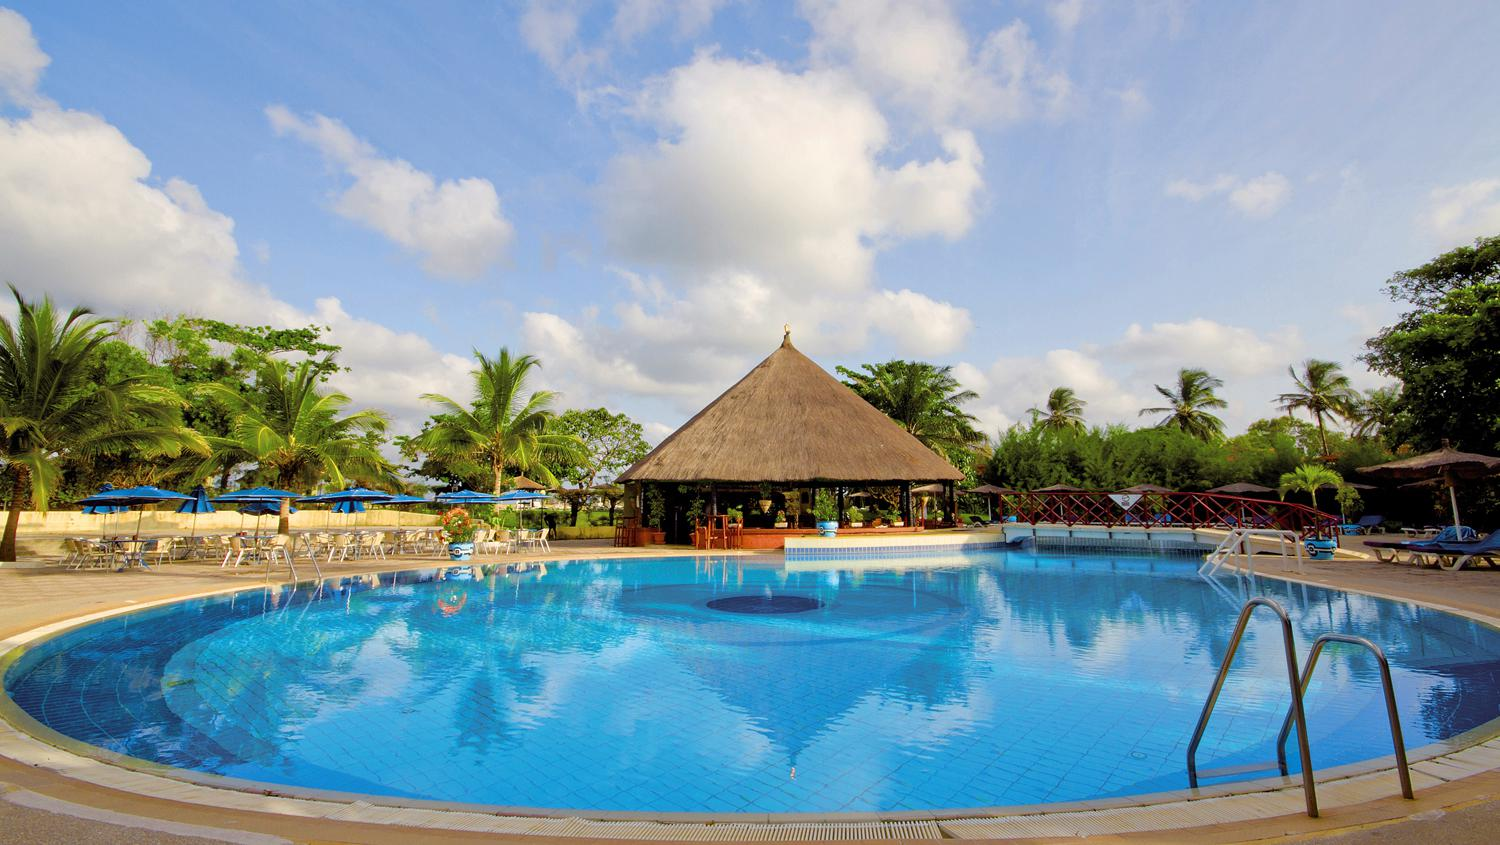 The Kairaba Beach Hotel is one of FTI's new hotels in Gambia.